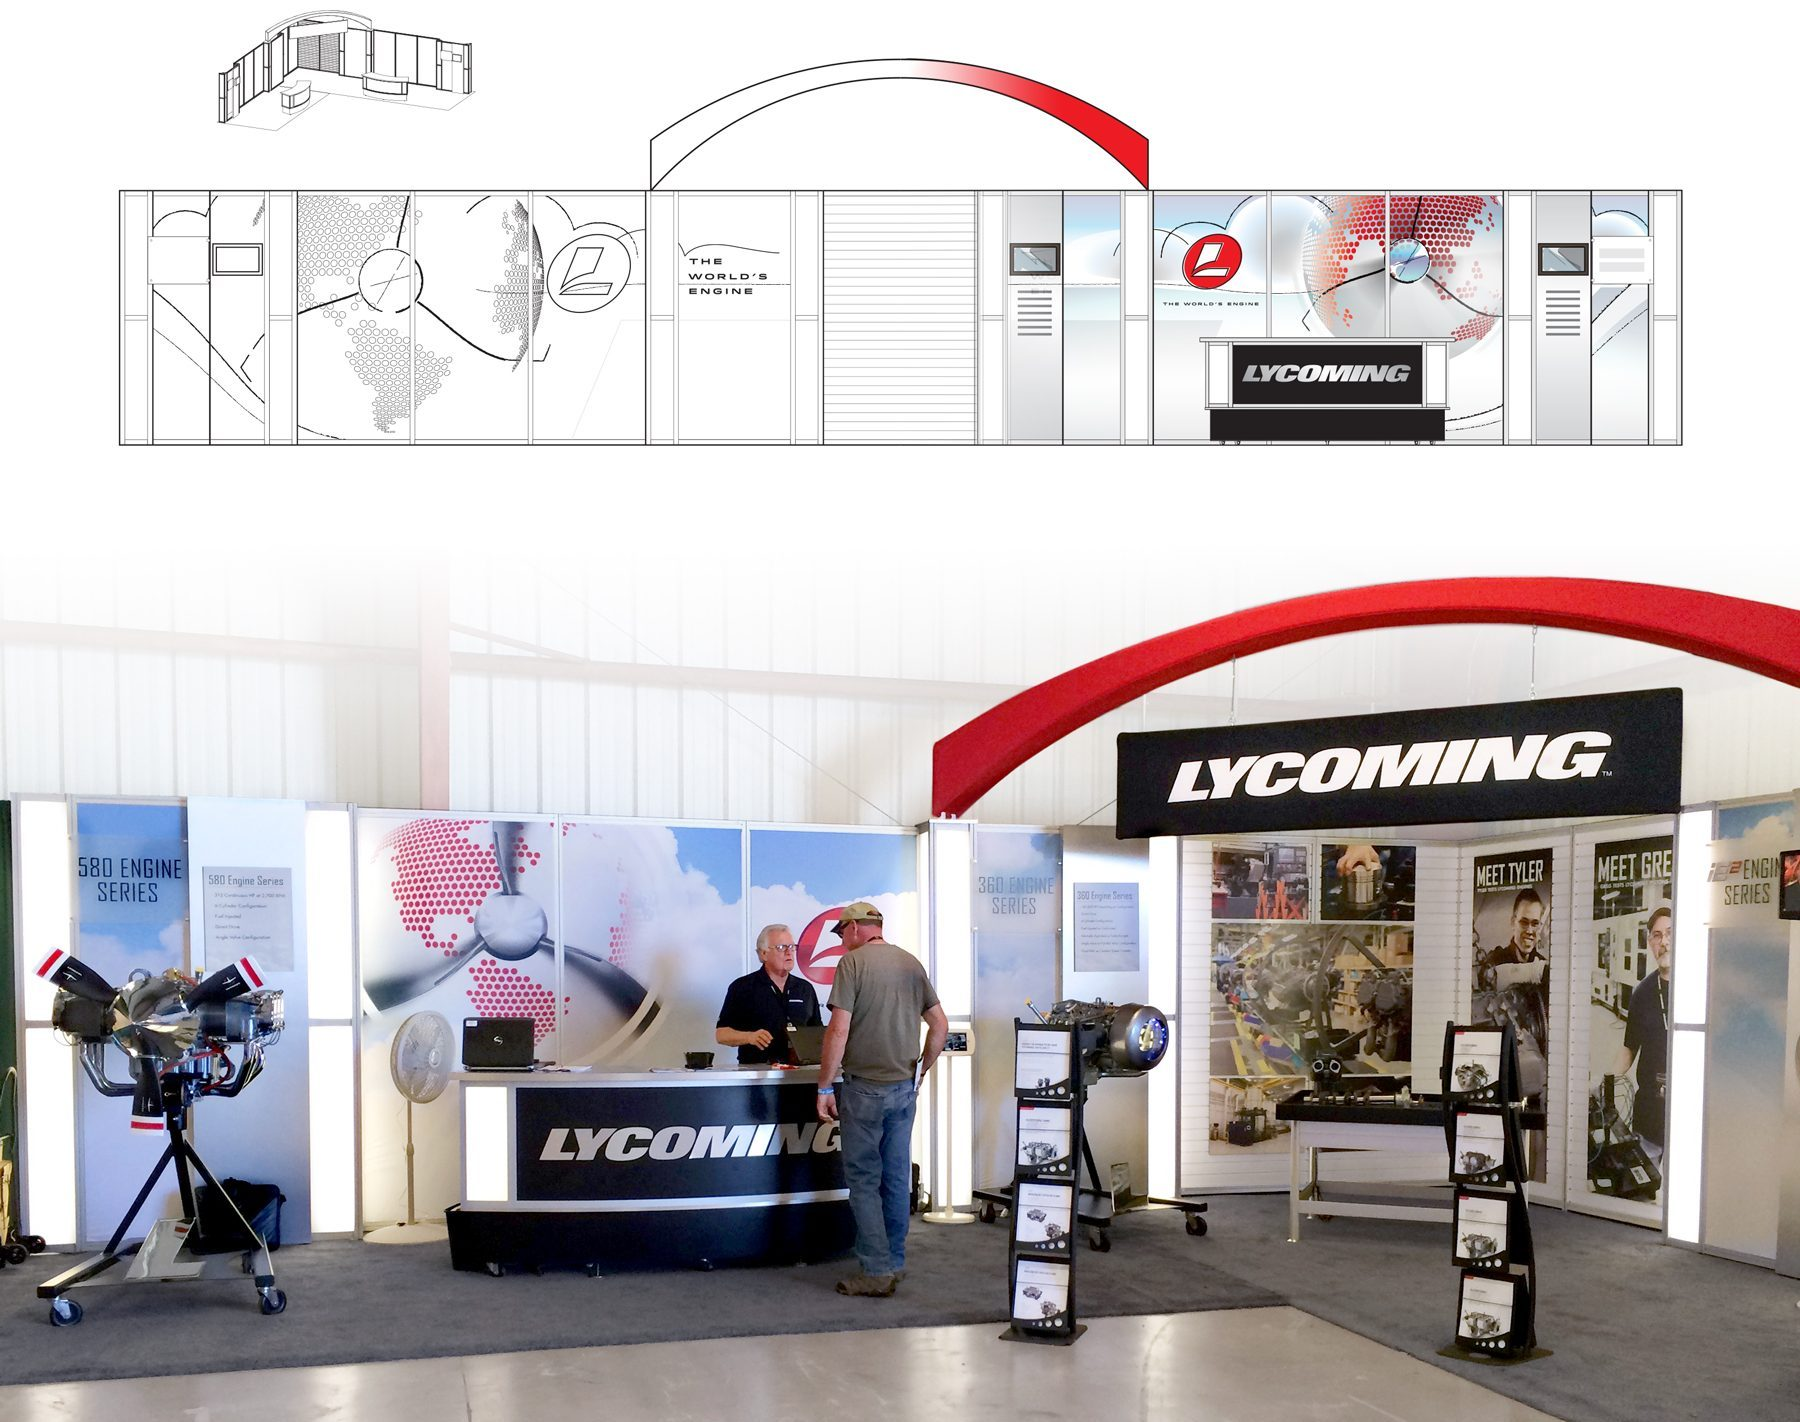 Aircraft engine manufacturer trade show booth sketch and a picture of a booth at a trade show